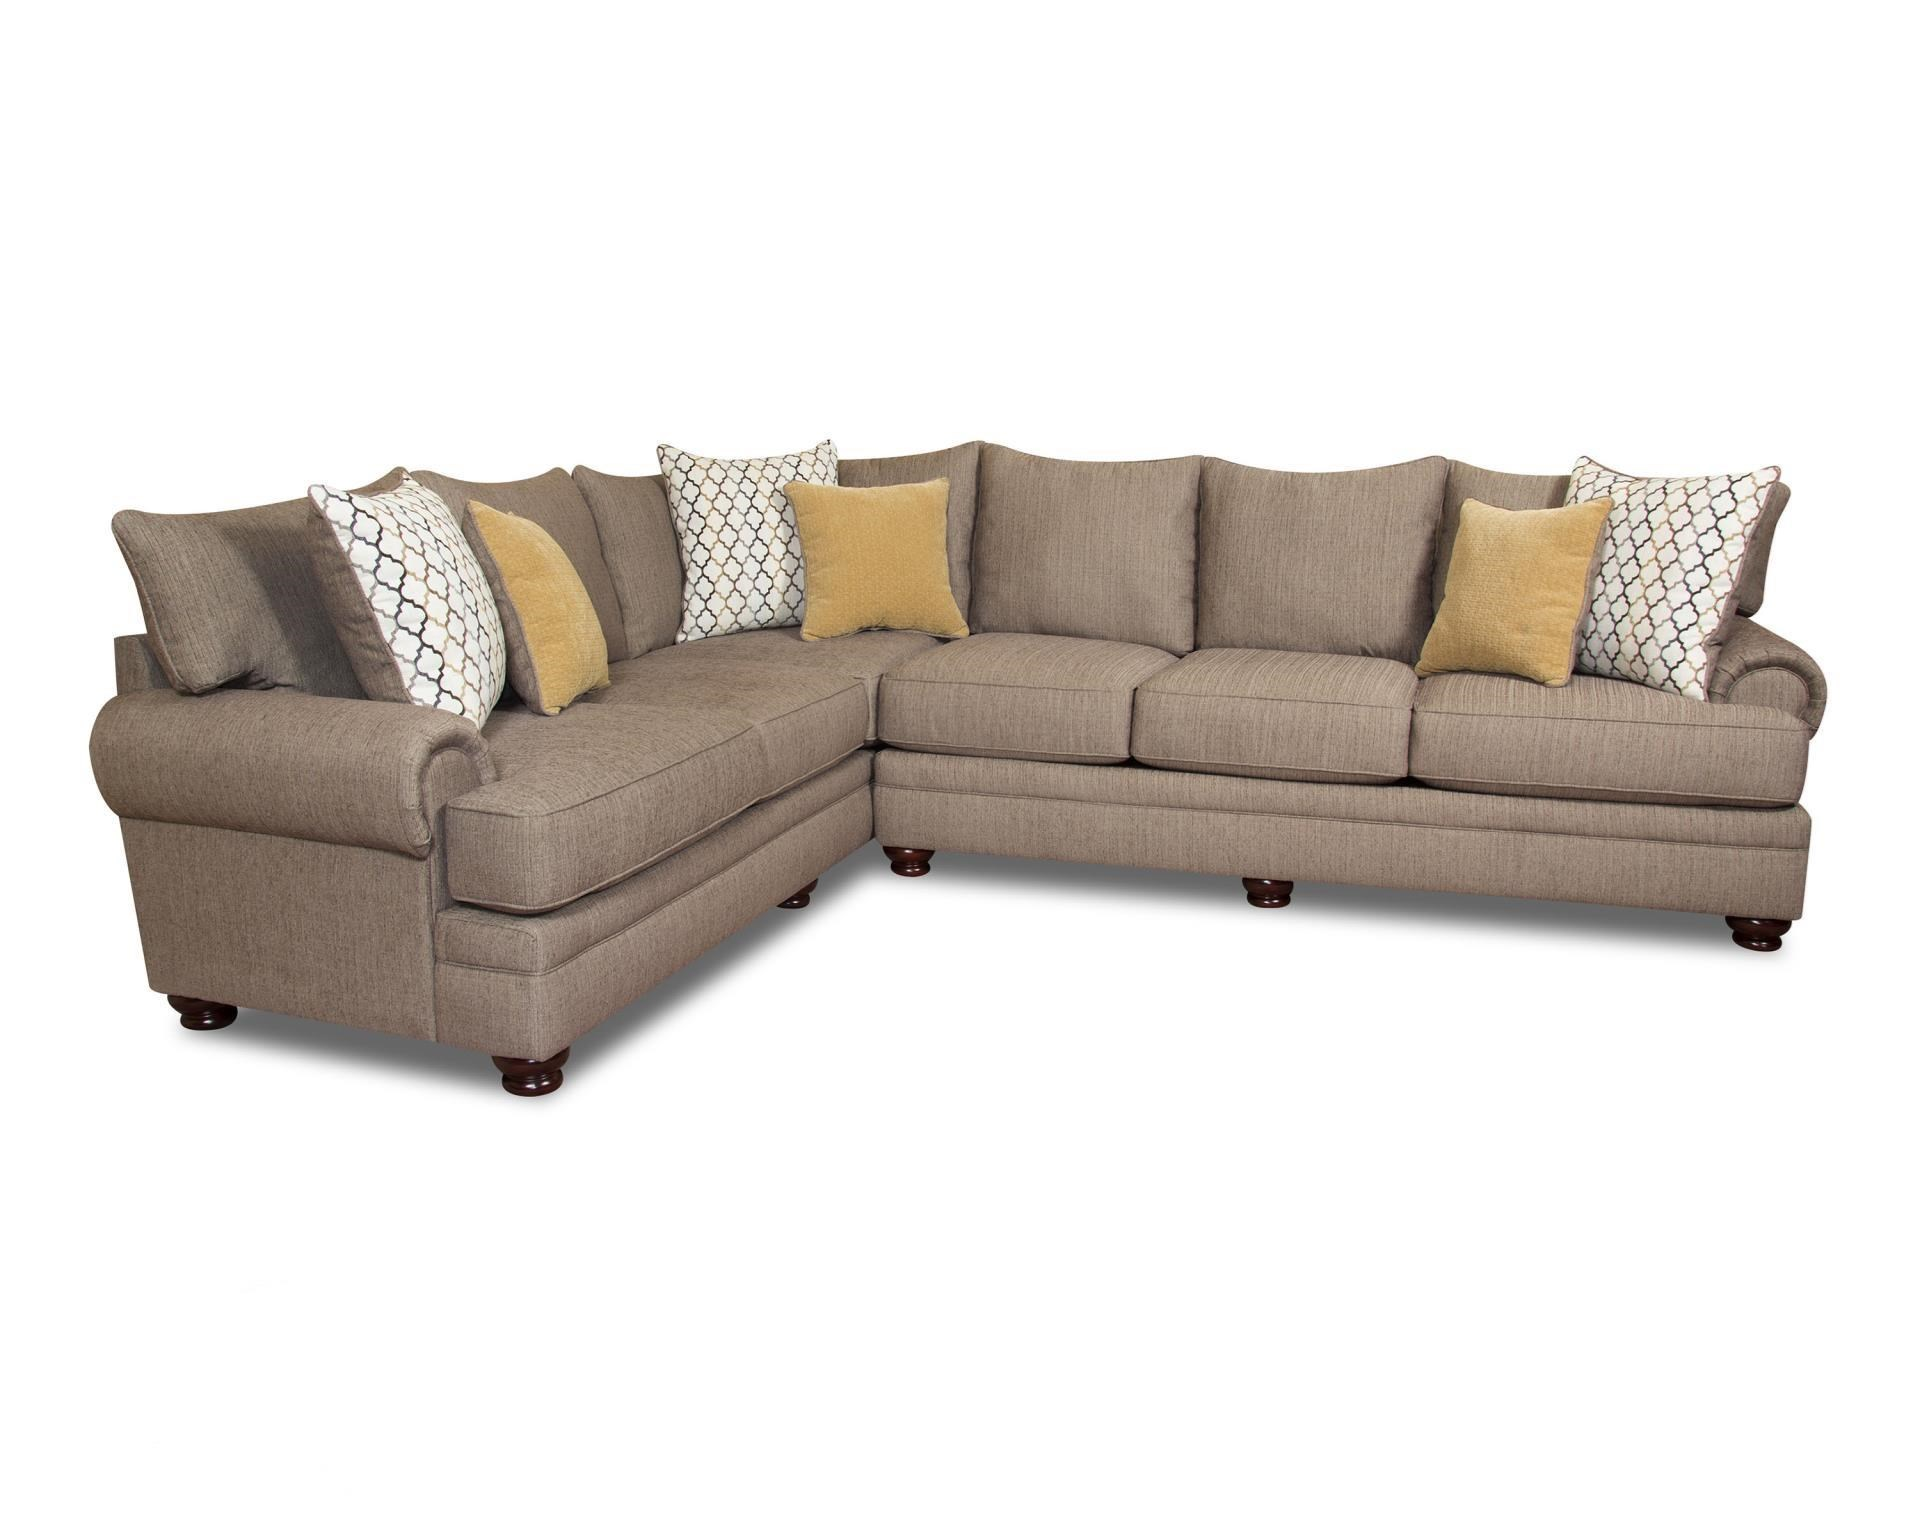 Morris Home Cosette Cosette 2-Piece Sectional - Item Number 134267445  sc 1 st  Morris Furniture : 2 piece reclining sectional - Sectionals, Sofas & Couches